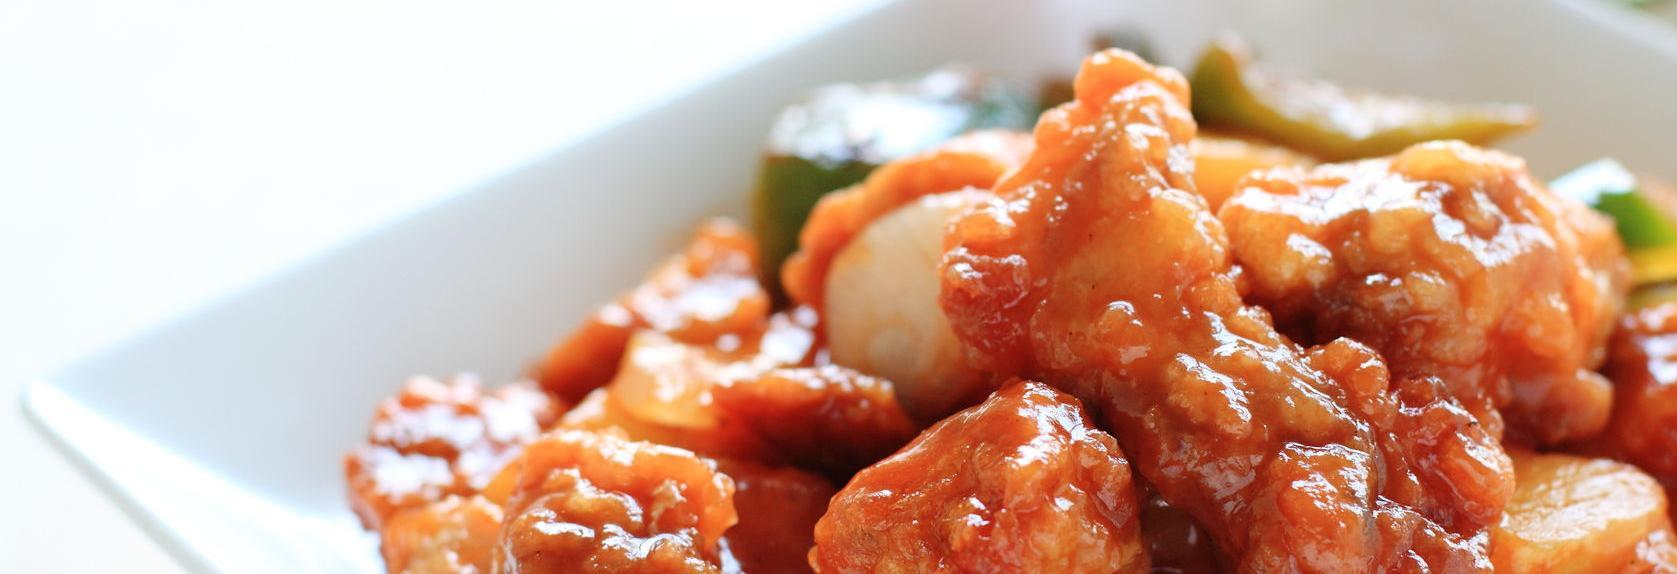 City Chopsticks sweet and sour pork plate banner